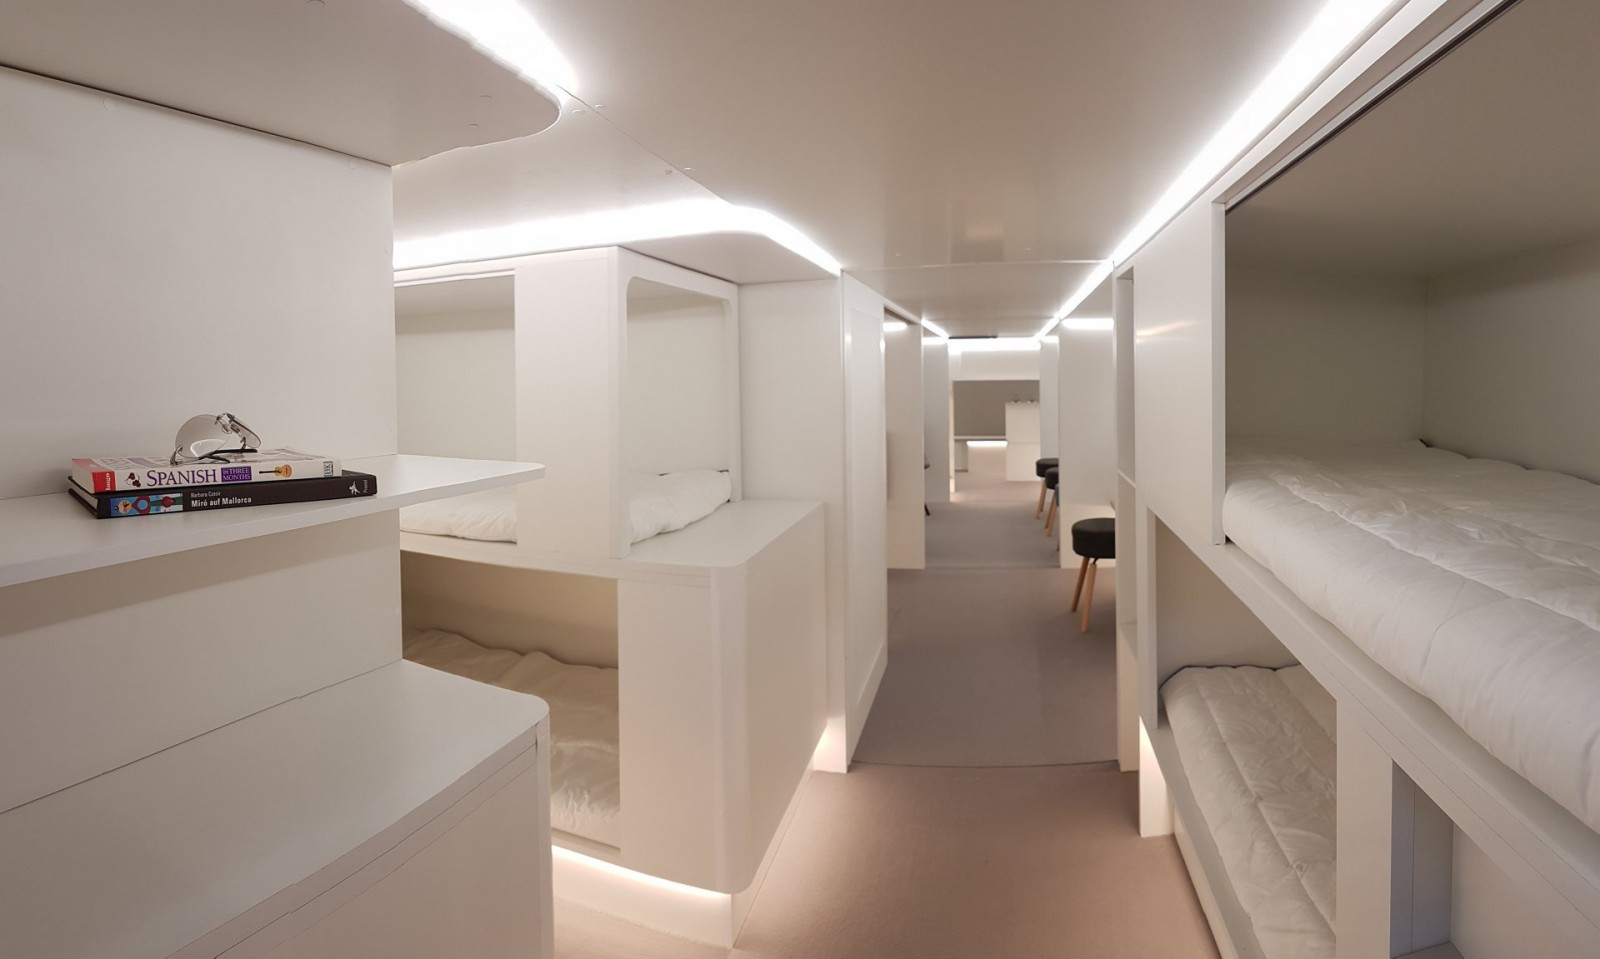 Qantas is considering downstairs beds